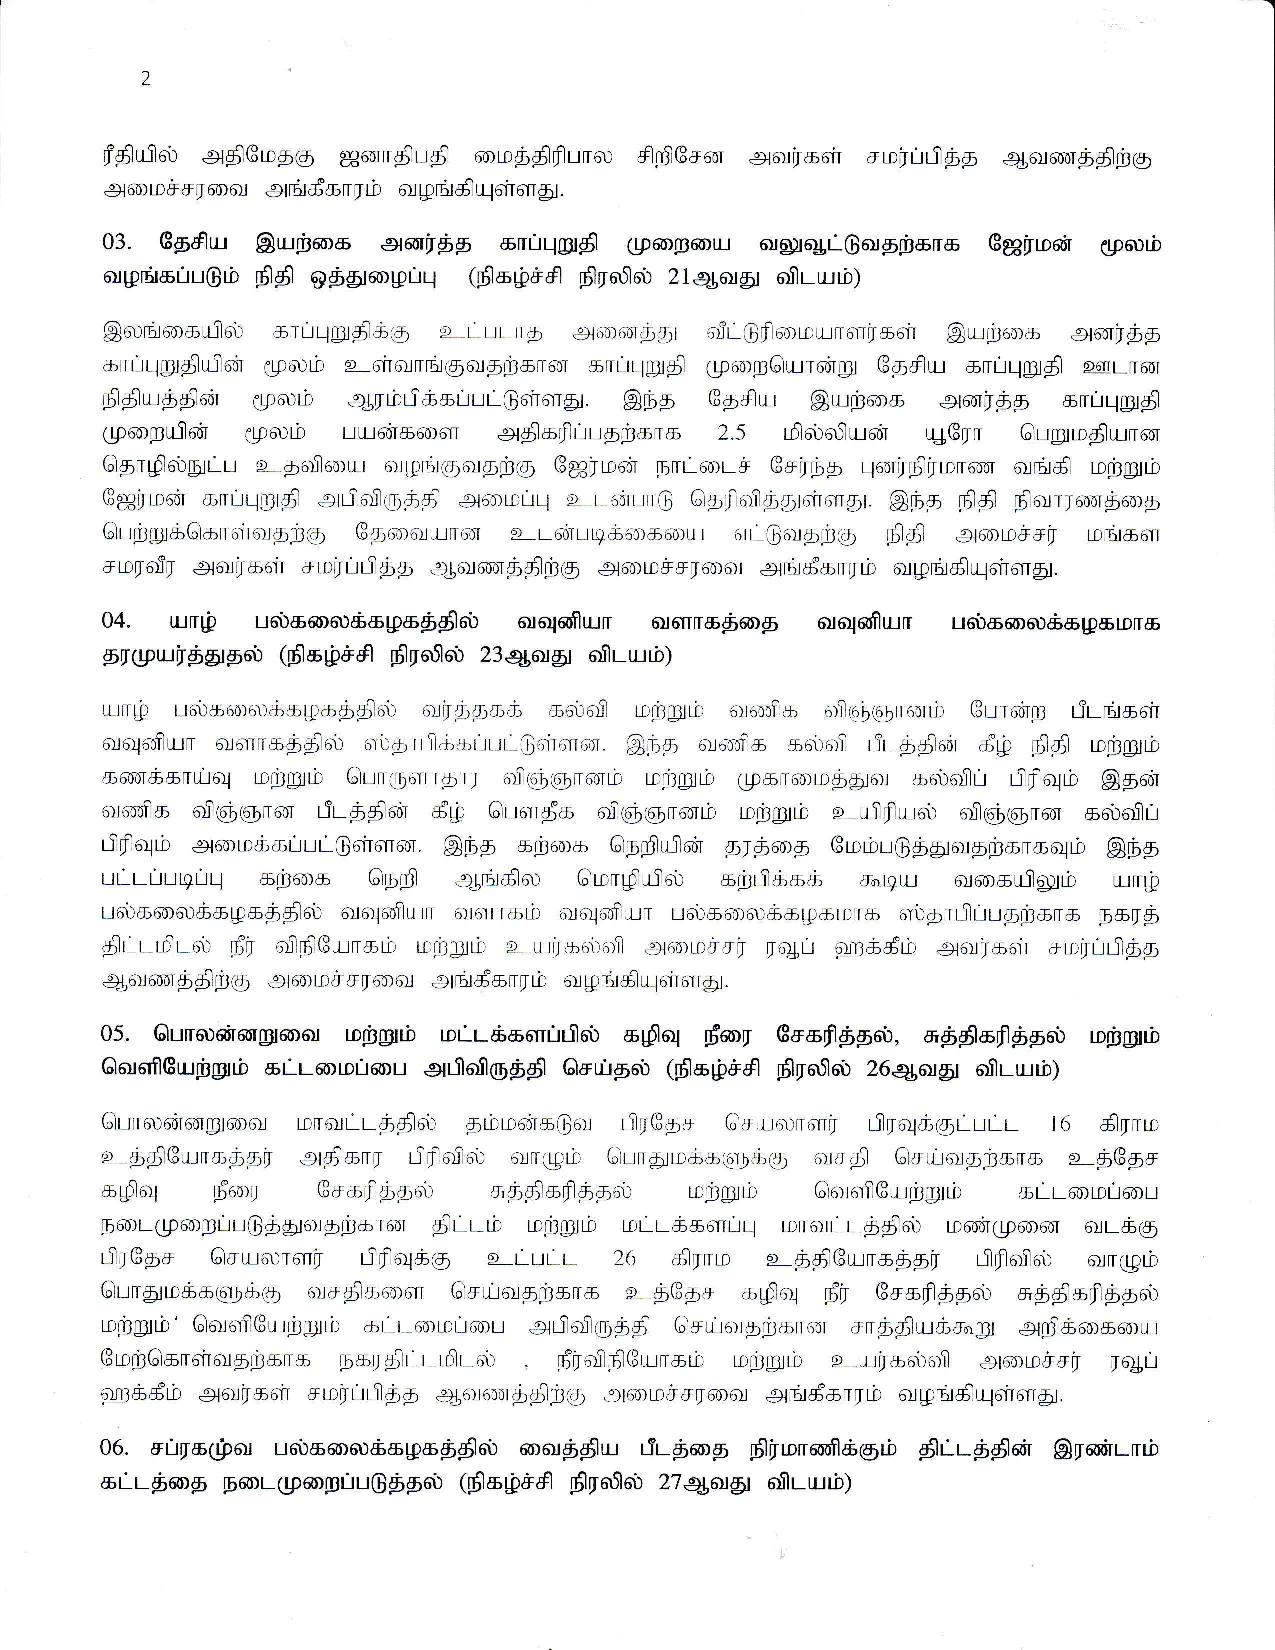 Cabinet Decision on 21.05.2019 Tamil page 003